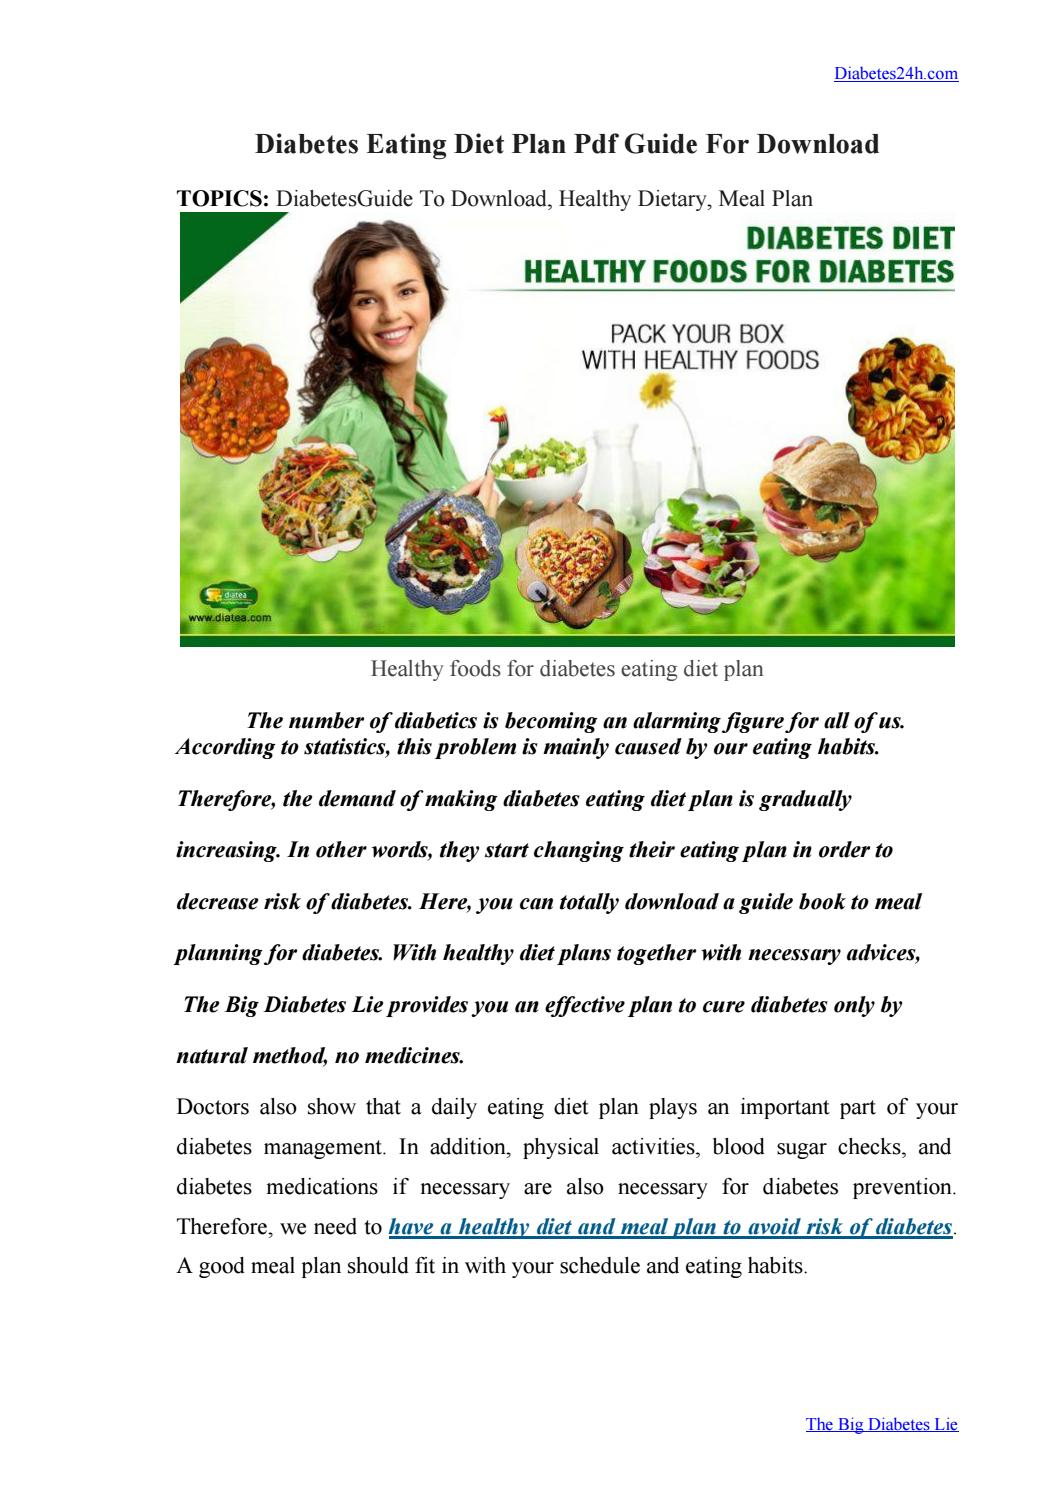 Diabetes Eating Diet Plan Pdf Guide For Download By Hannah Lee Issuu